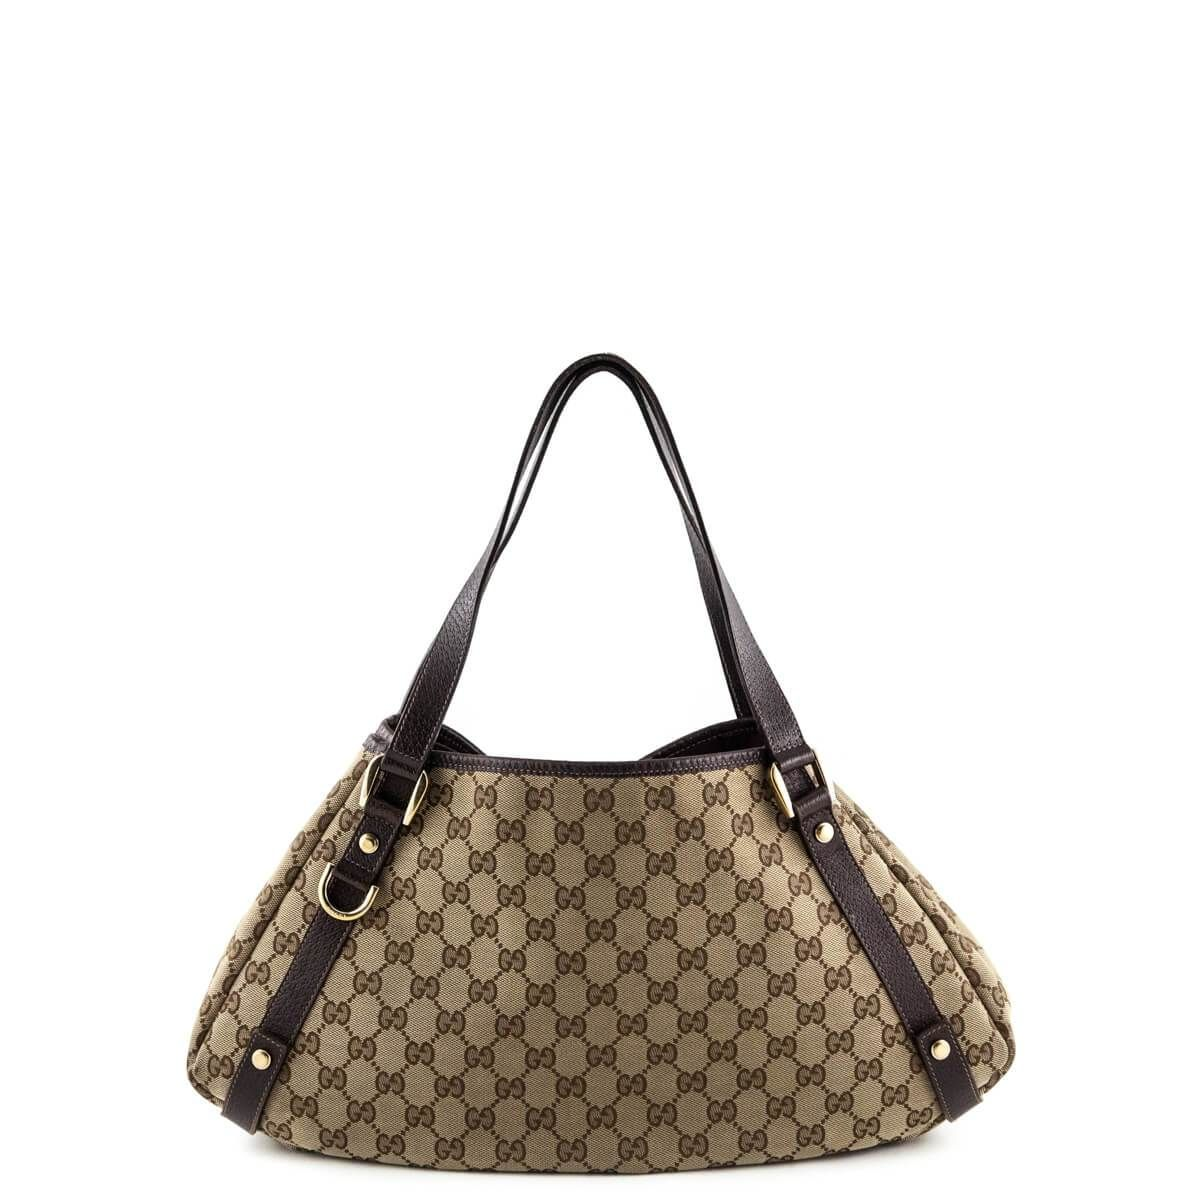 a623420fce84 Gucci Monogram Canvas Tote Bag - LOVE that BAG - Preowned Authentic  Designer Handbags